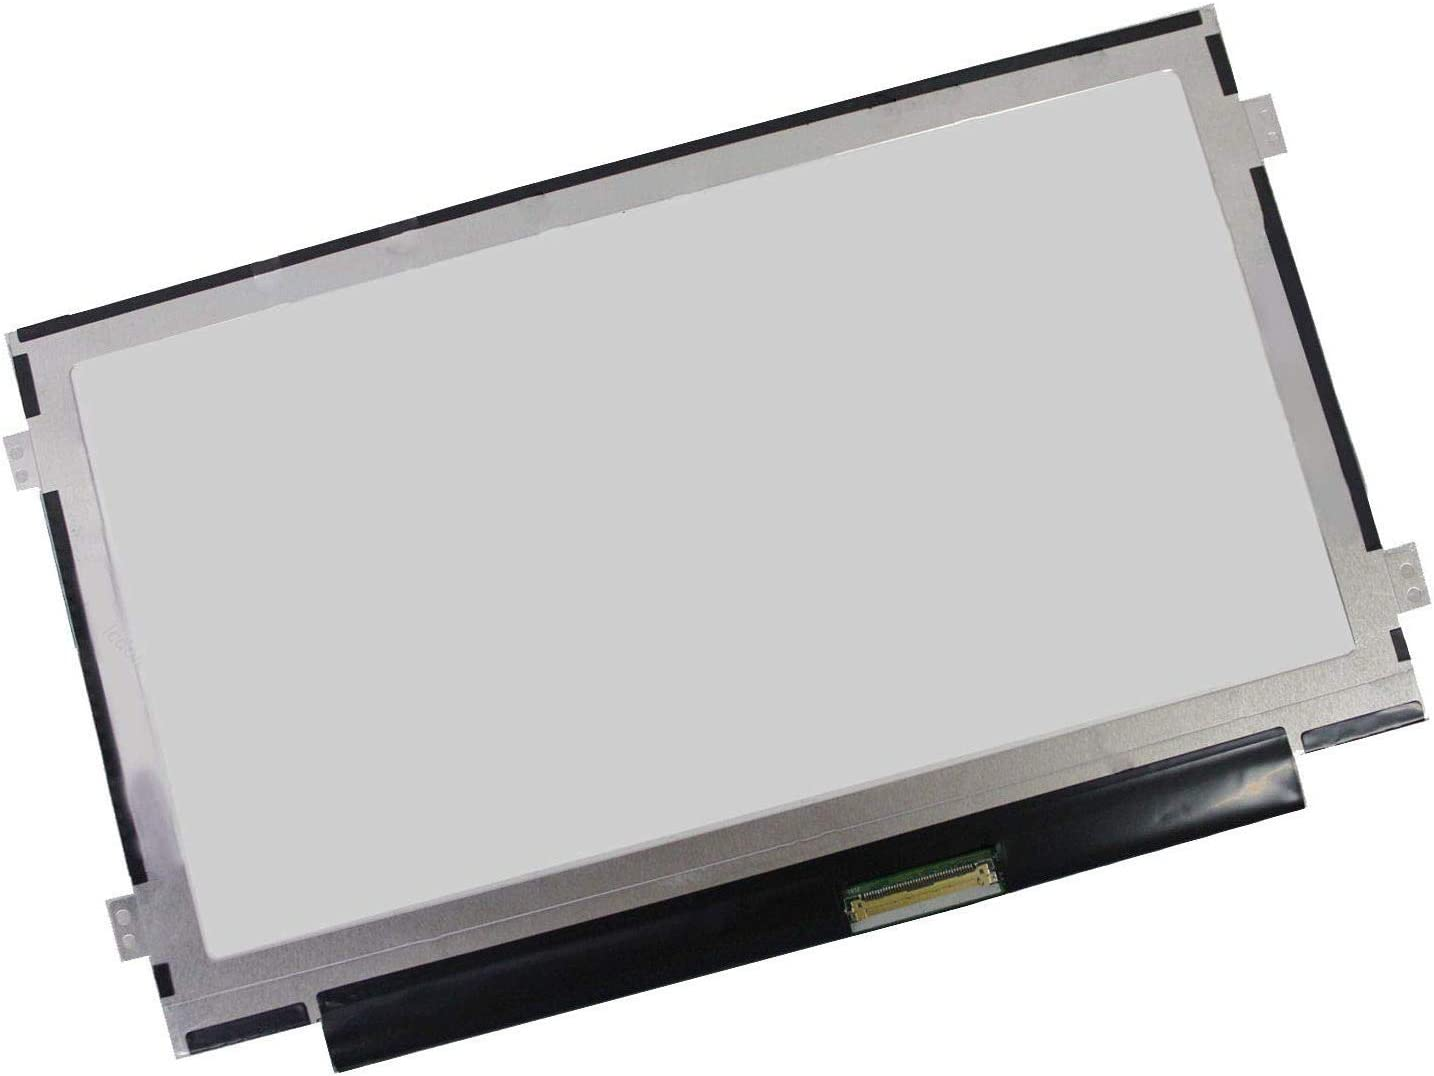 """Bblon 10.1"""" LED LCD Display Screen Panel for Acer Aspire ONE D255E D257 D270"""